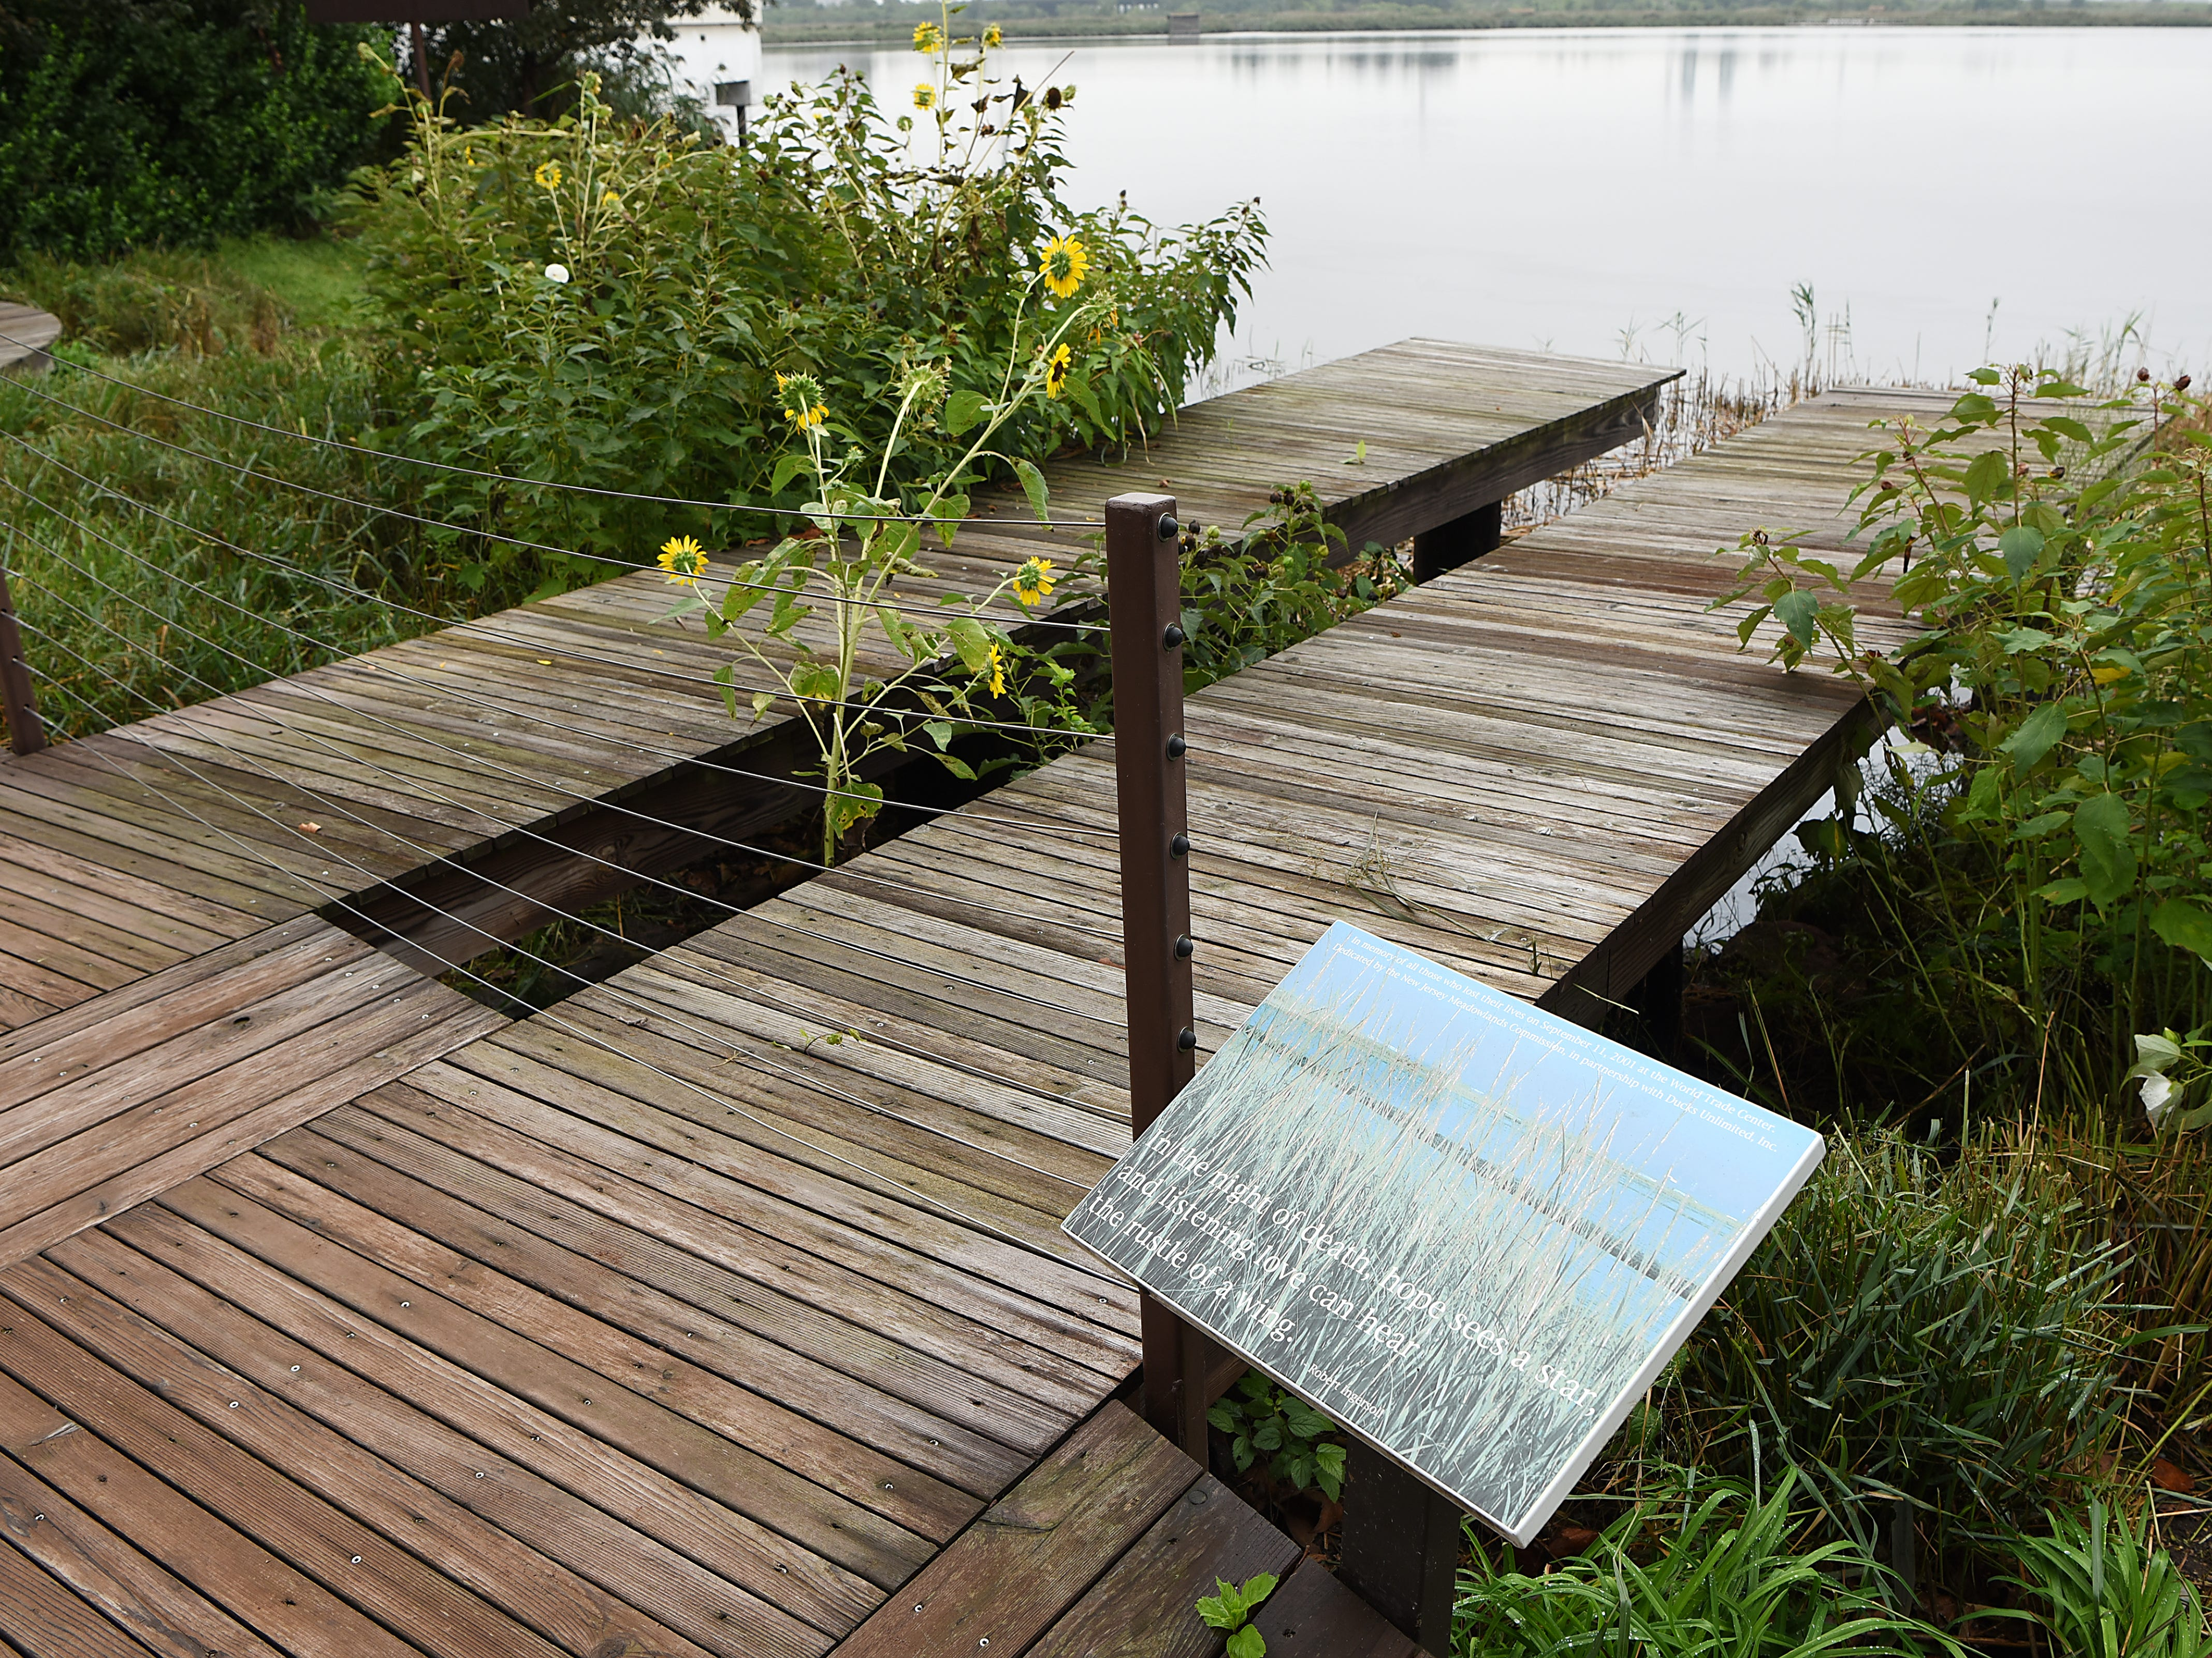 September 11th memorial at DeKorte Park in Lyndhurst on Tuesday September 11, 2018. The memorial consists of two identical piers jutting over a marsh and depicting the shadows of the Twin Towers. Each wooden pier has 110 slats, representing the towers' 110 floors. A porcelain enamel plaque is inscribed with a dedication to the 9/11 victims.